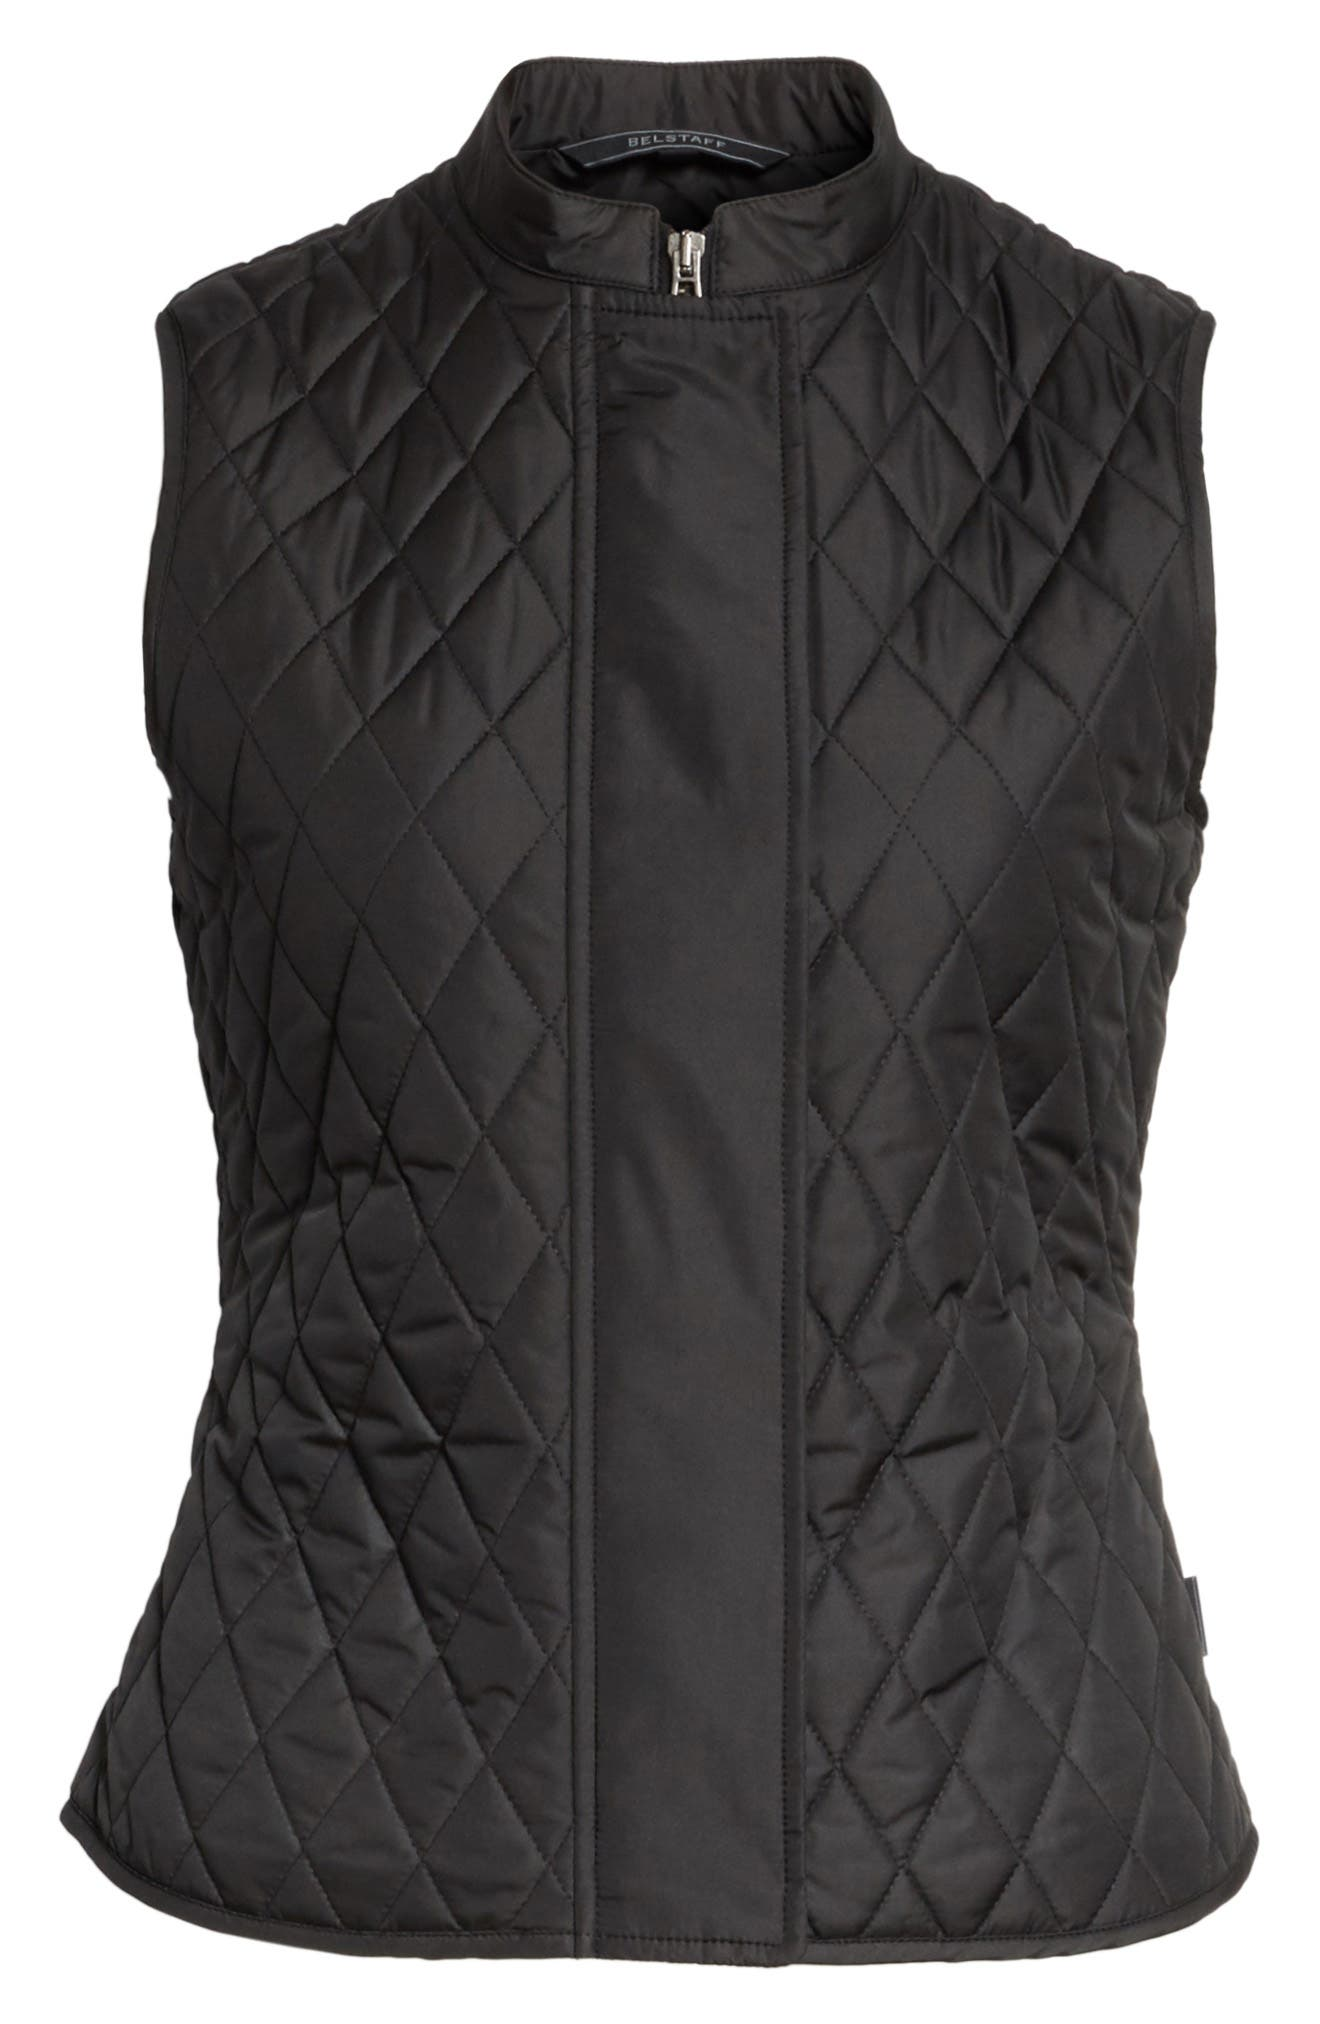 Main Image - Belstaff Westwell Technical Quilted Vest